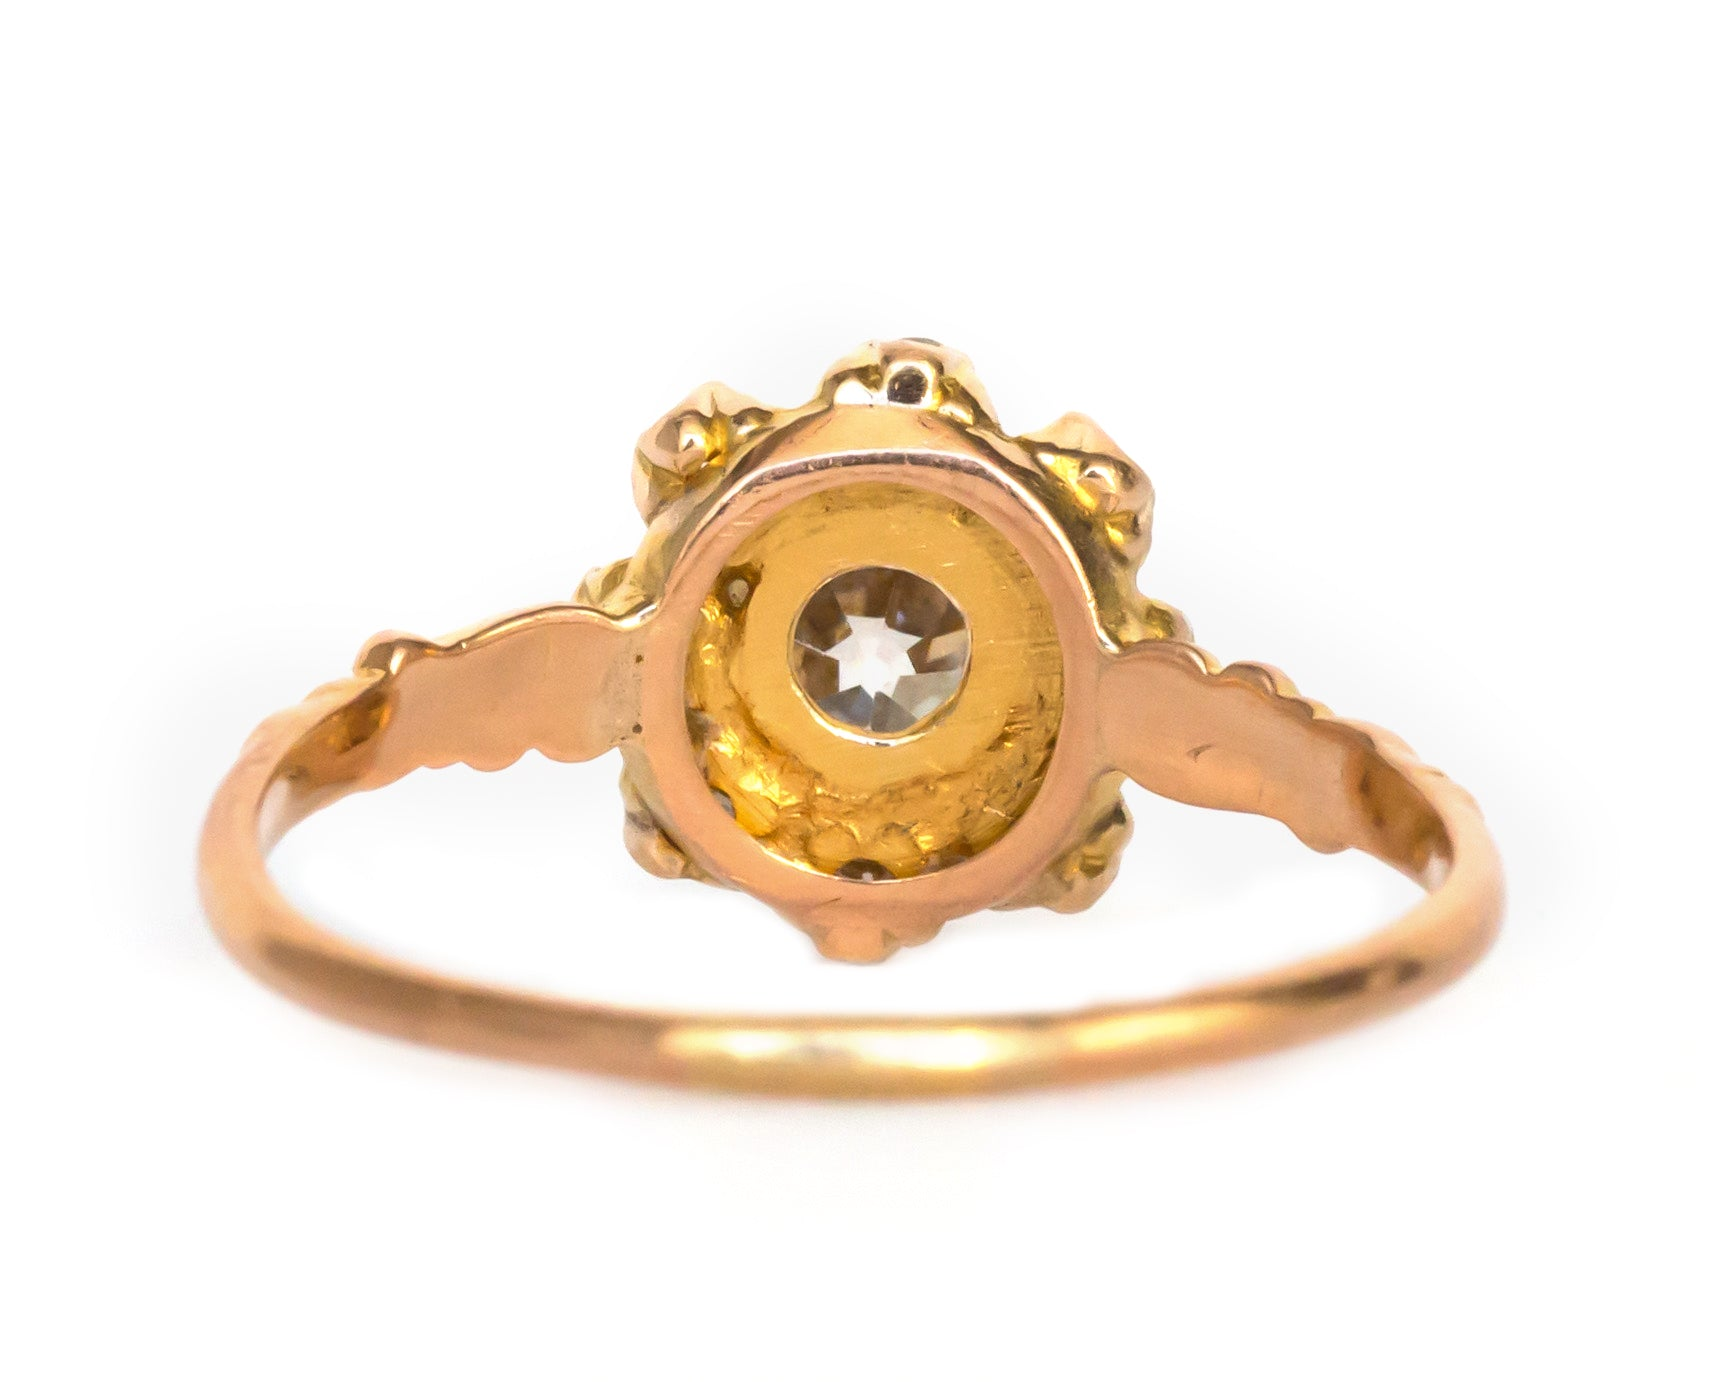 kiki amber rings jewellery mcdonough ripple ring gold product engagement citrine yellow sloane